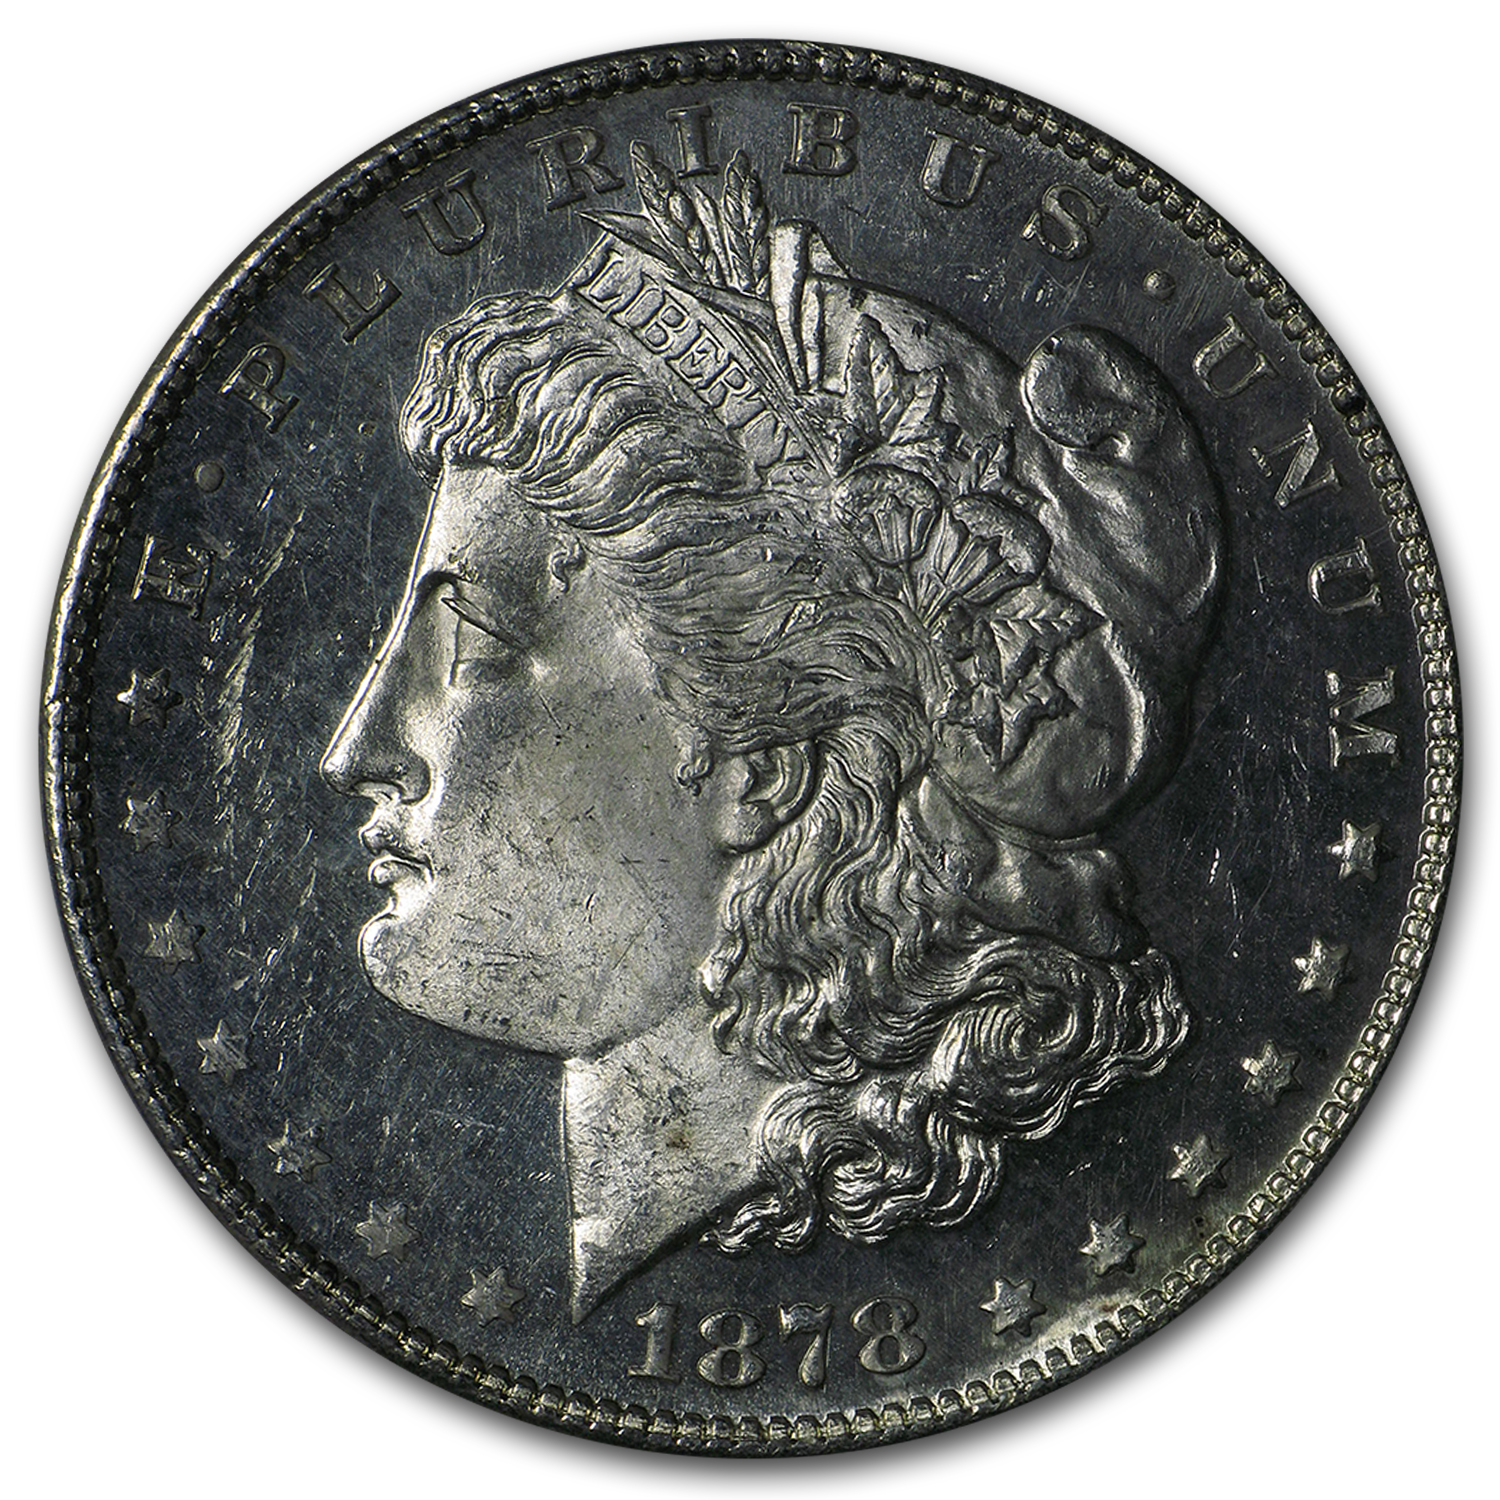 1878-S Morgan Dollar - MS-63 PL Proof Like PCGS